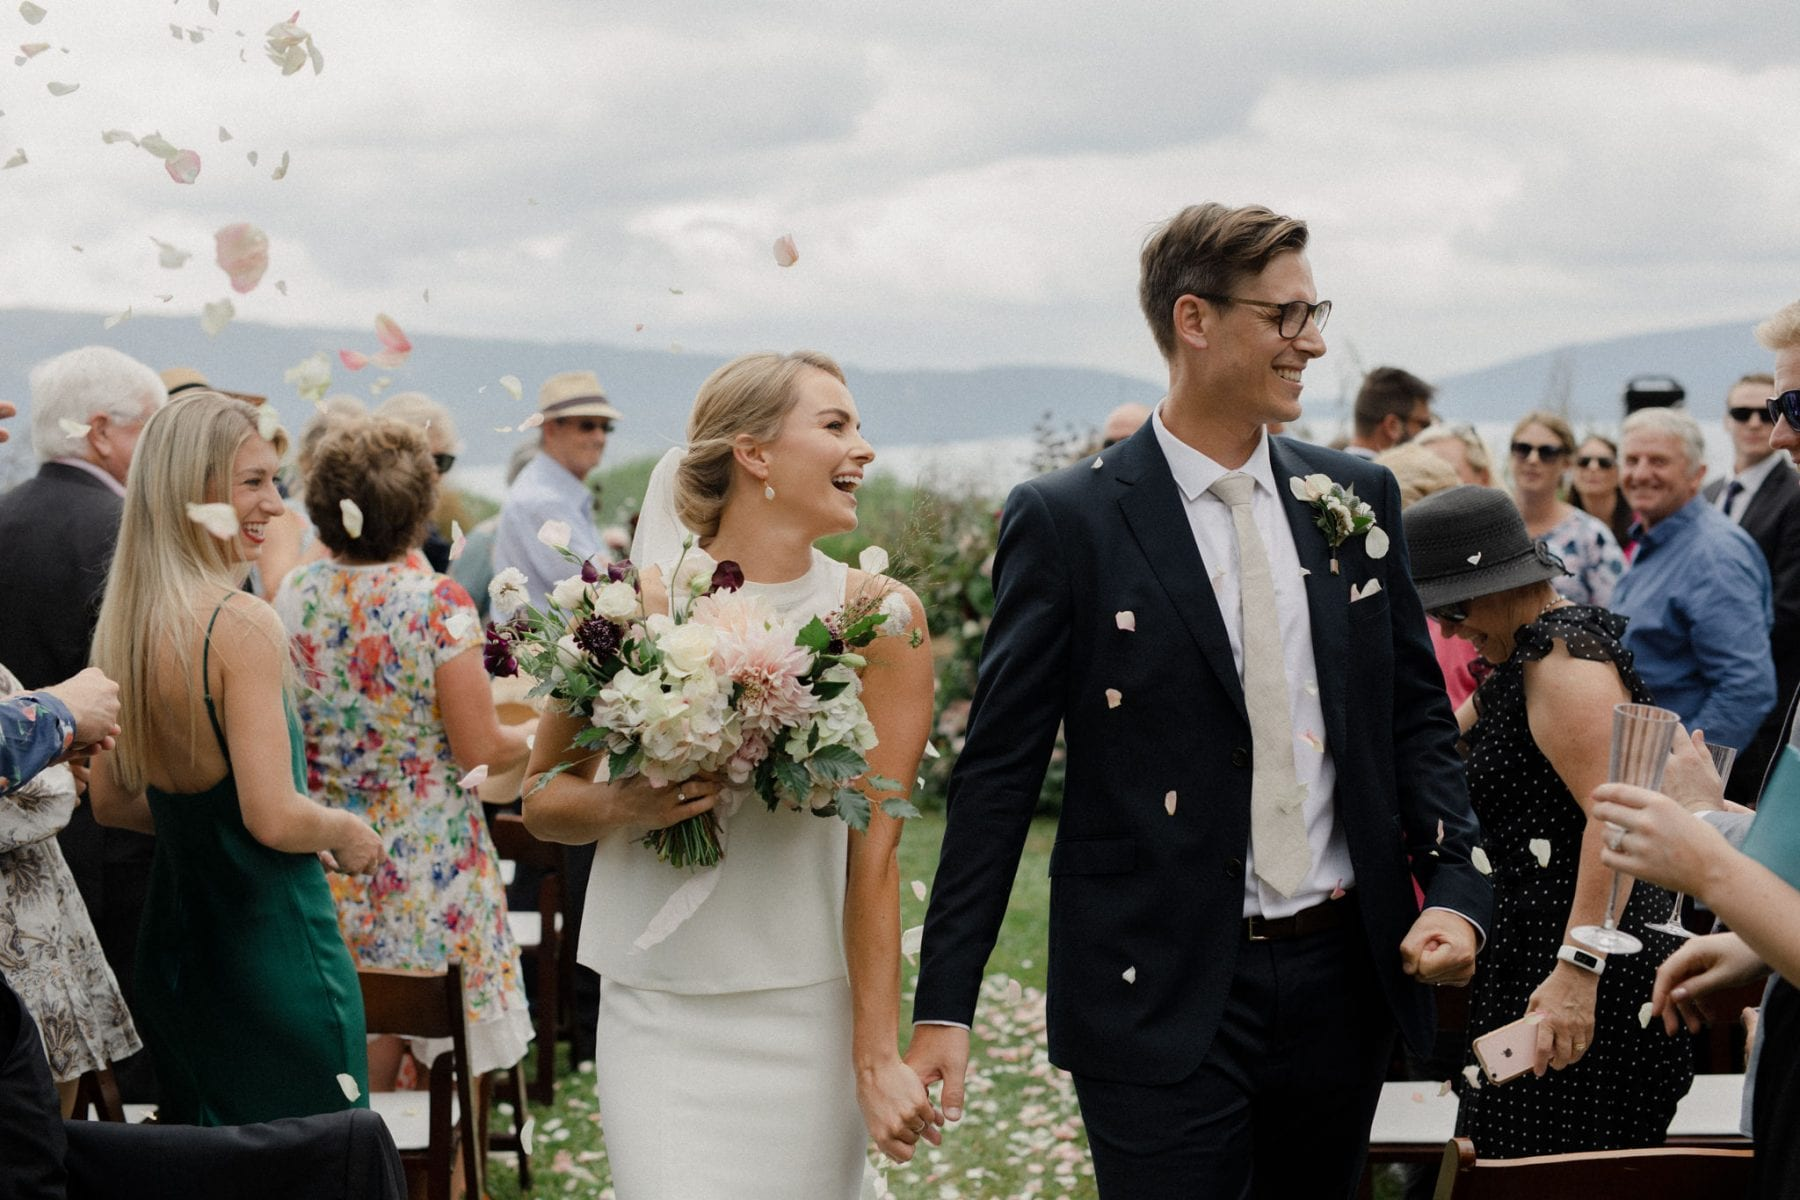 On My Hand wedding flowers - real wedding with black barn elegance - bride and groom walk aisle with bouquet and confetti